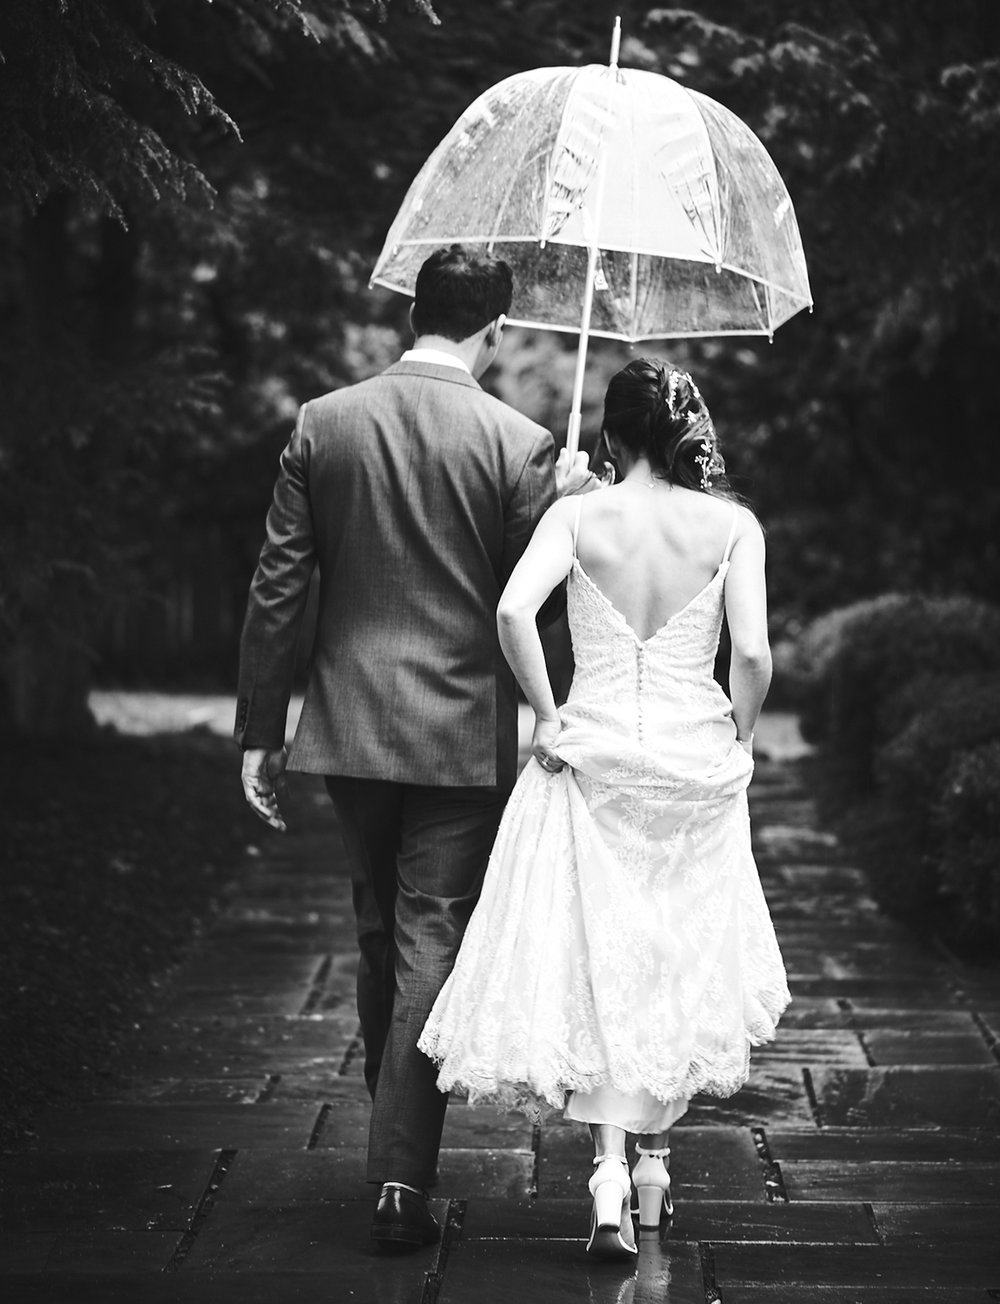 180610_TheRylandInnWeddingPhotography_RainyWeddingPhotography_By_BriJohnsonWeddings_0125.jpg